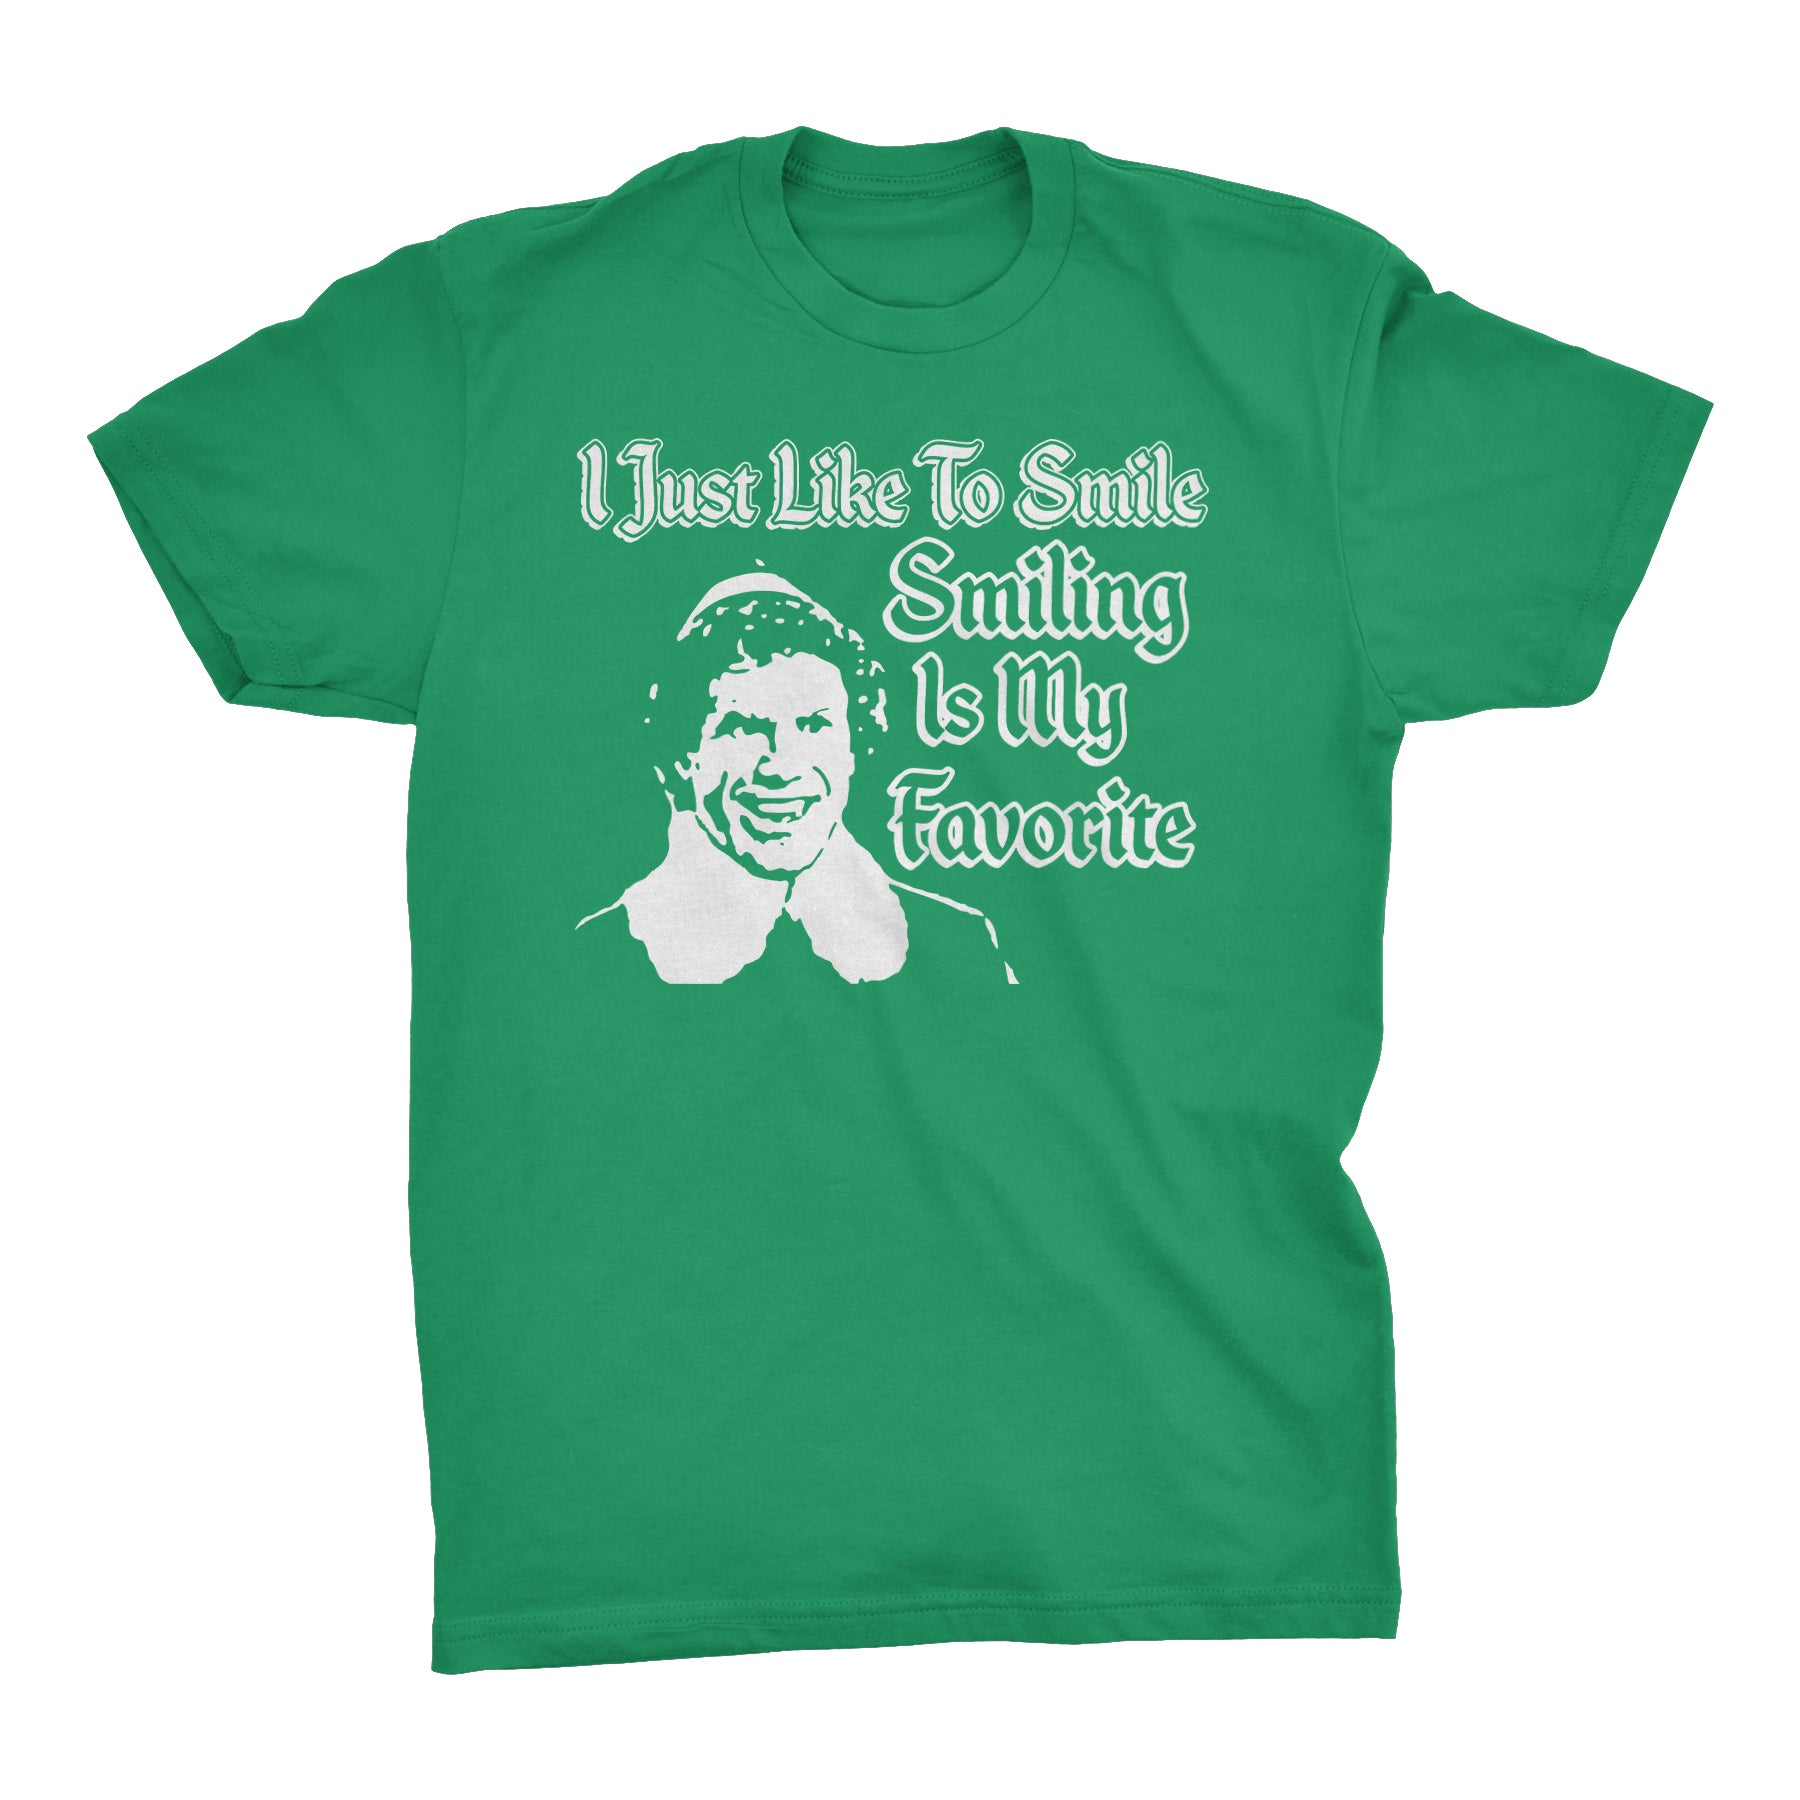 I Just Like To Smile, Smiling Is My Favorite - FACE - Christmas-T-Shirt